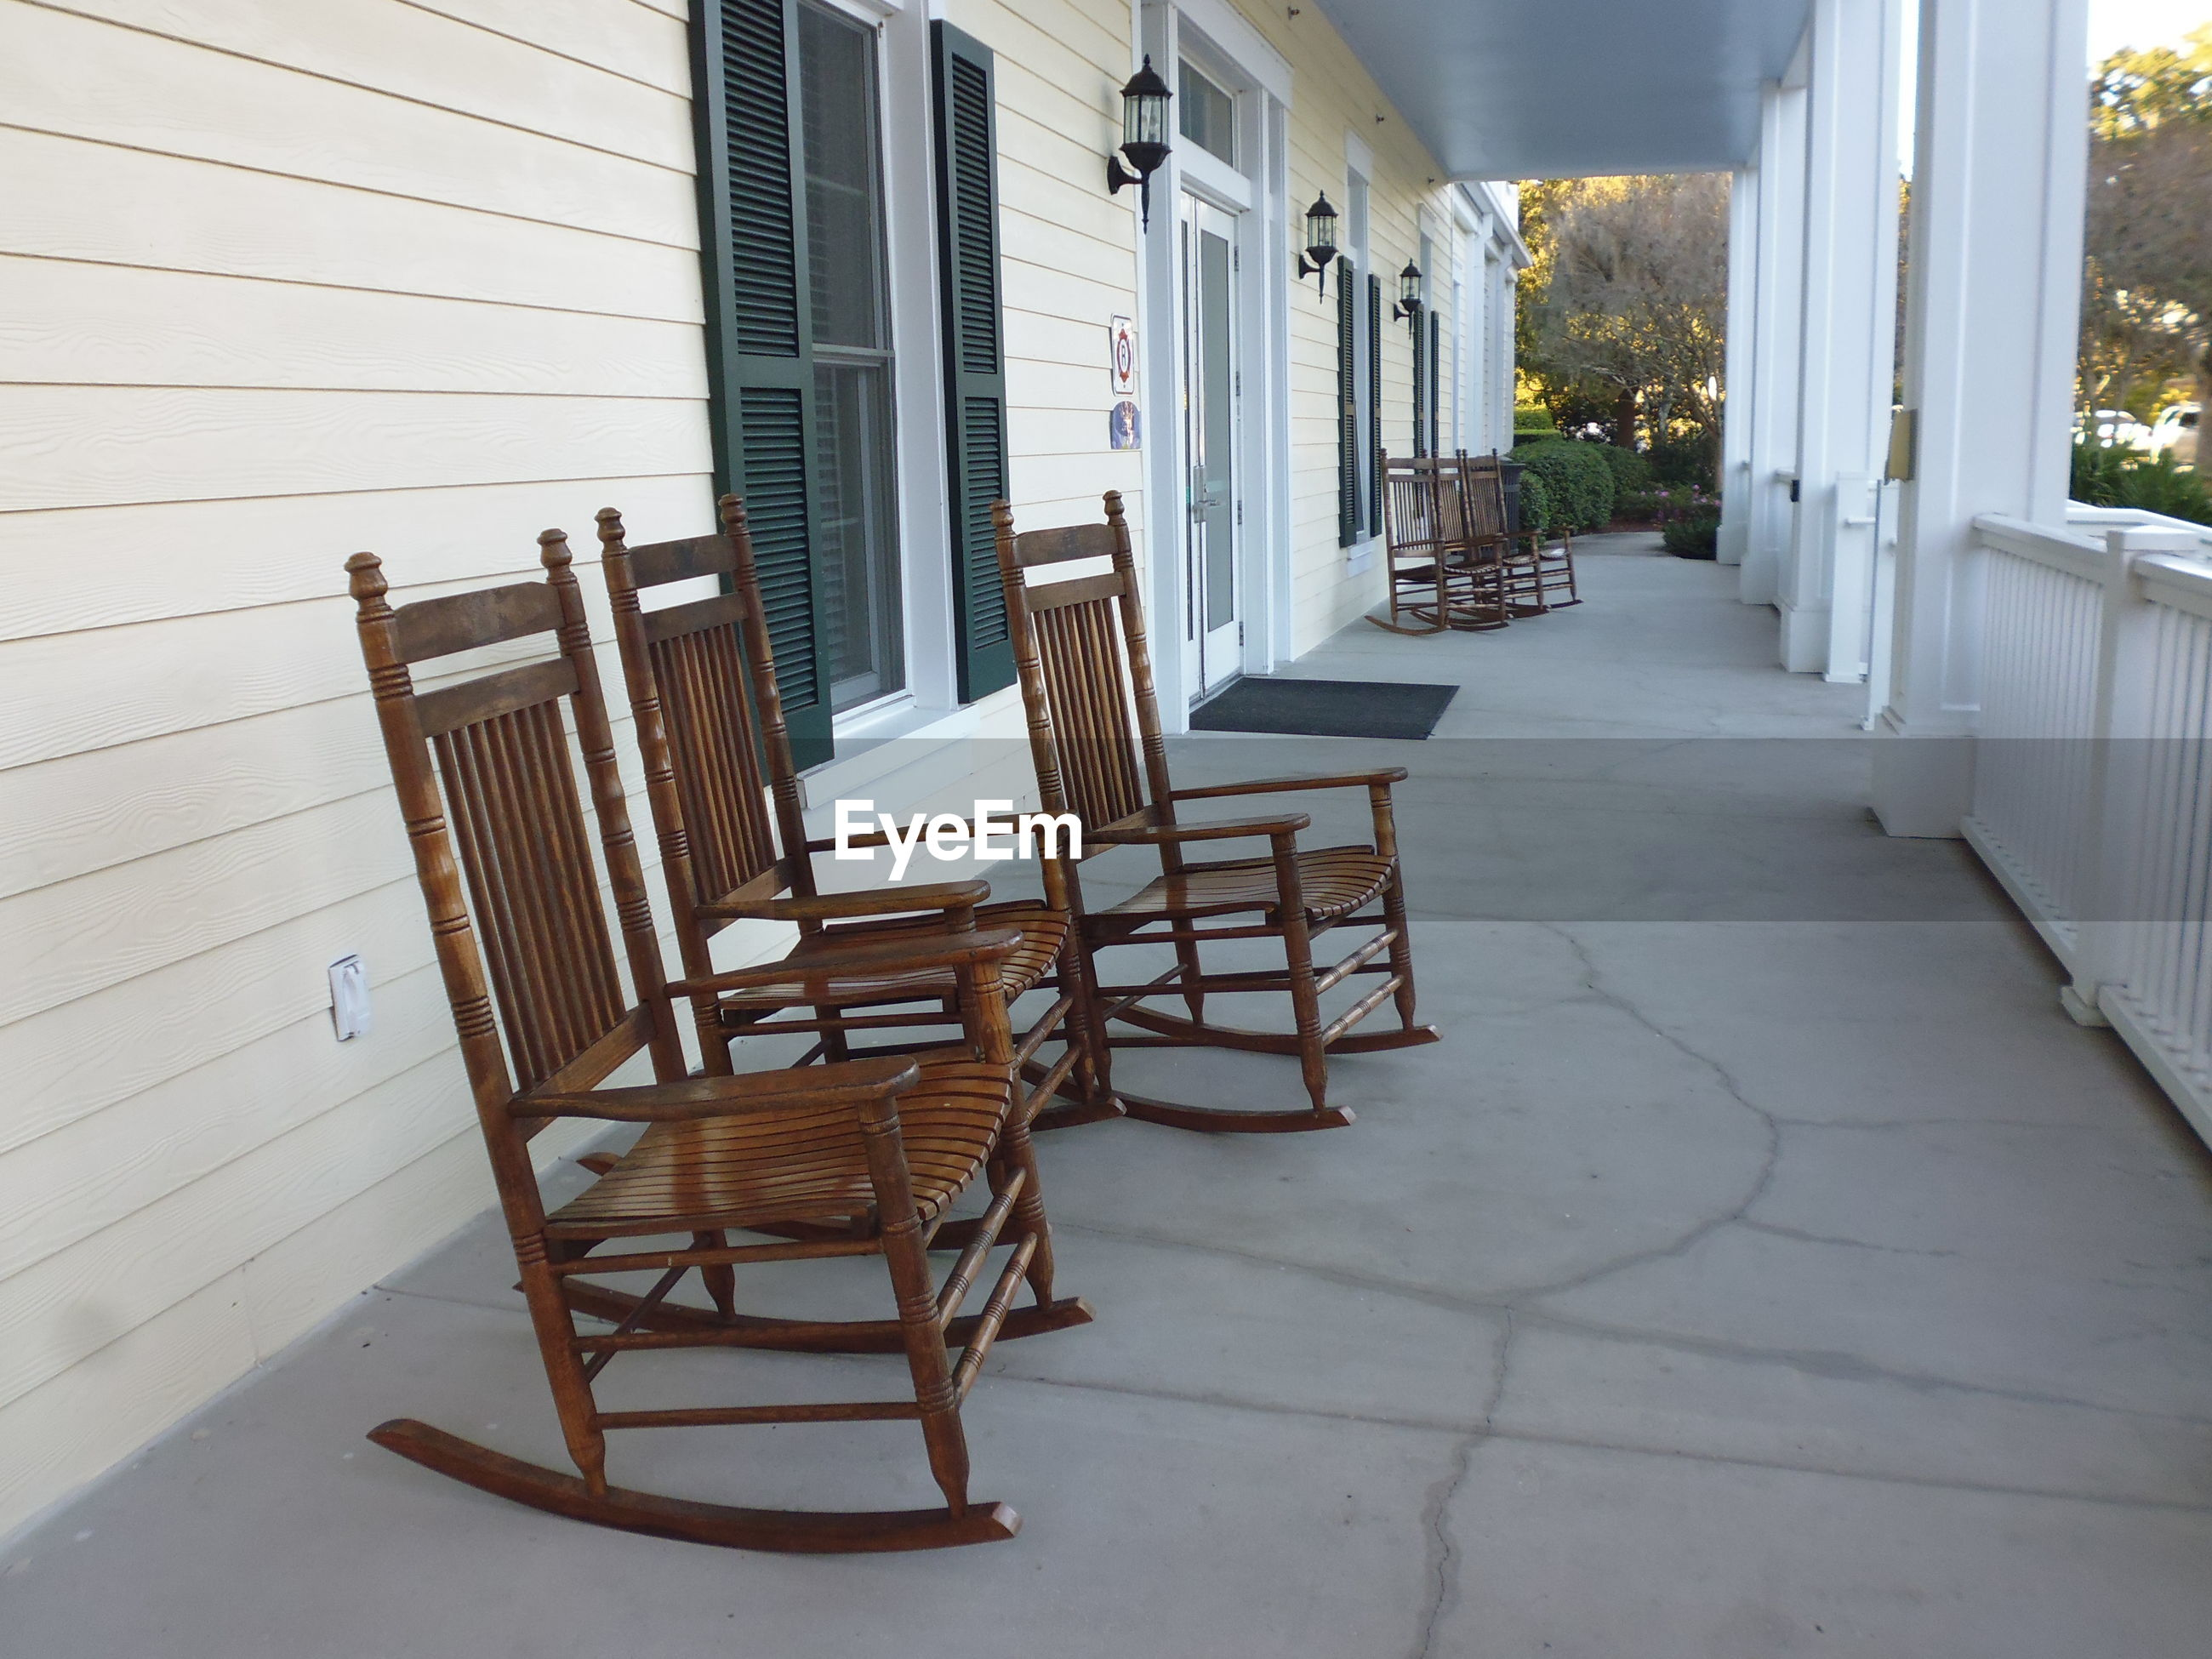 EMPTY CHAIRS AND TABLE IN THE PORCH